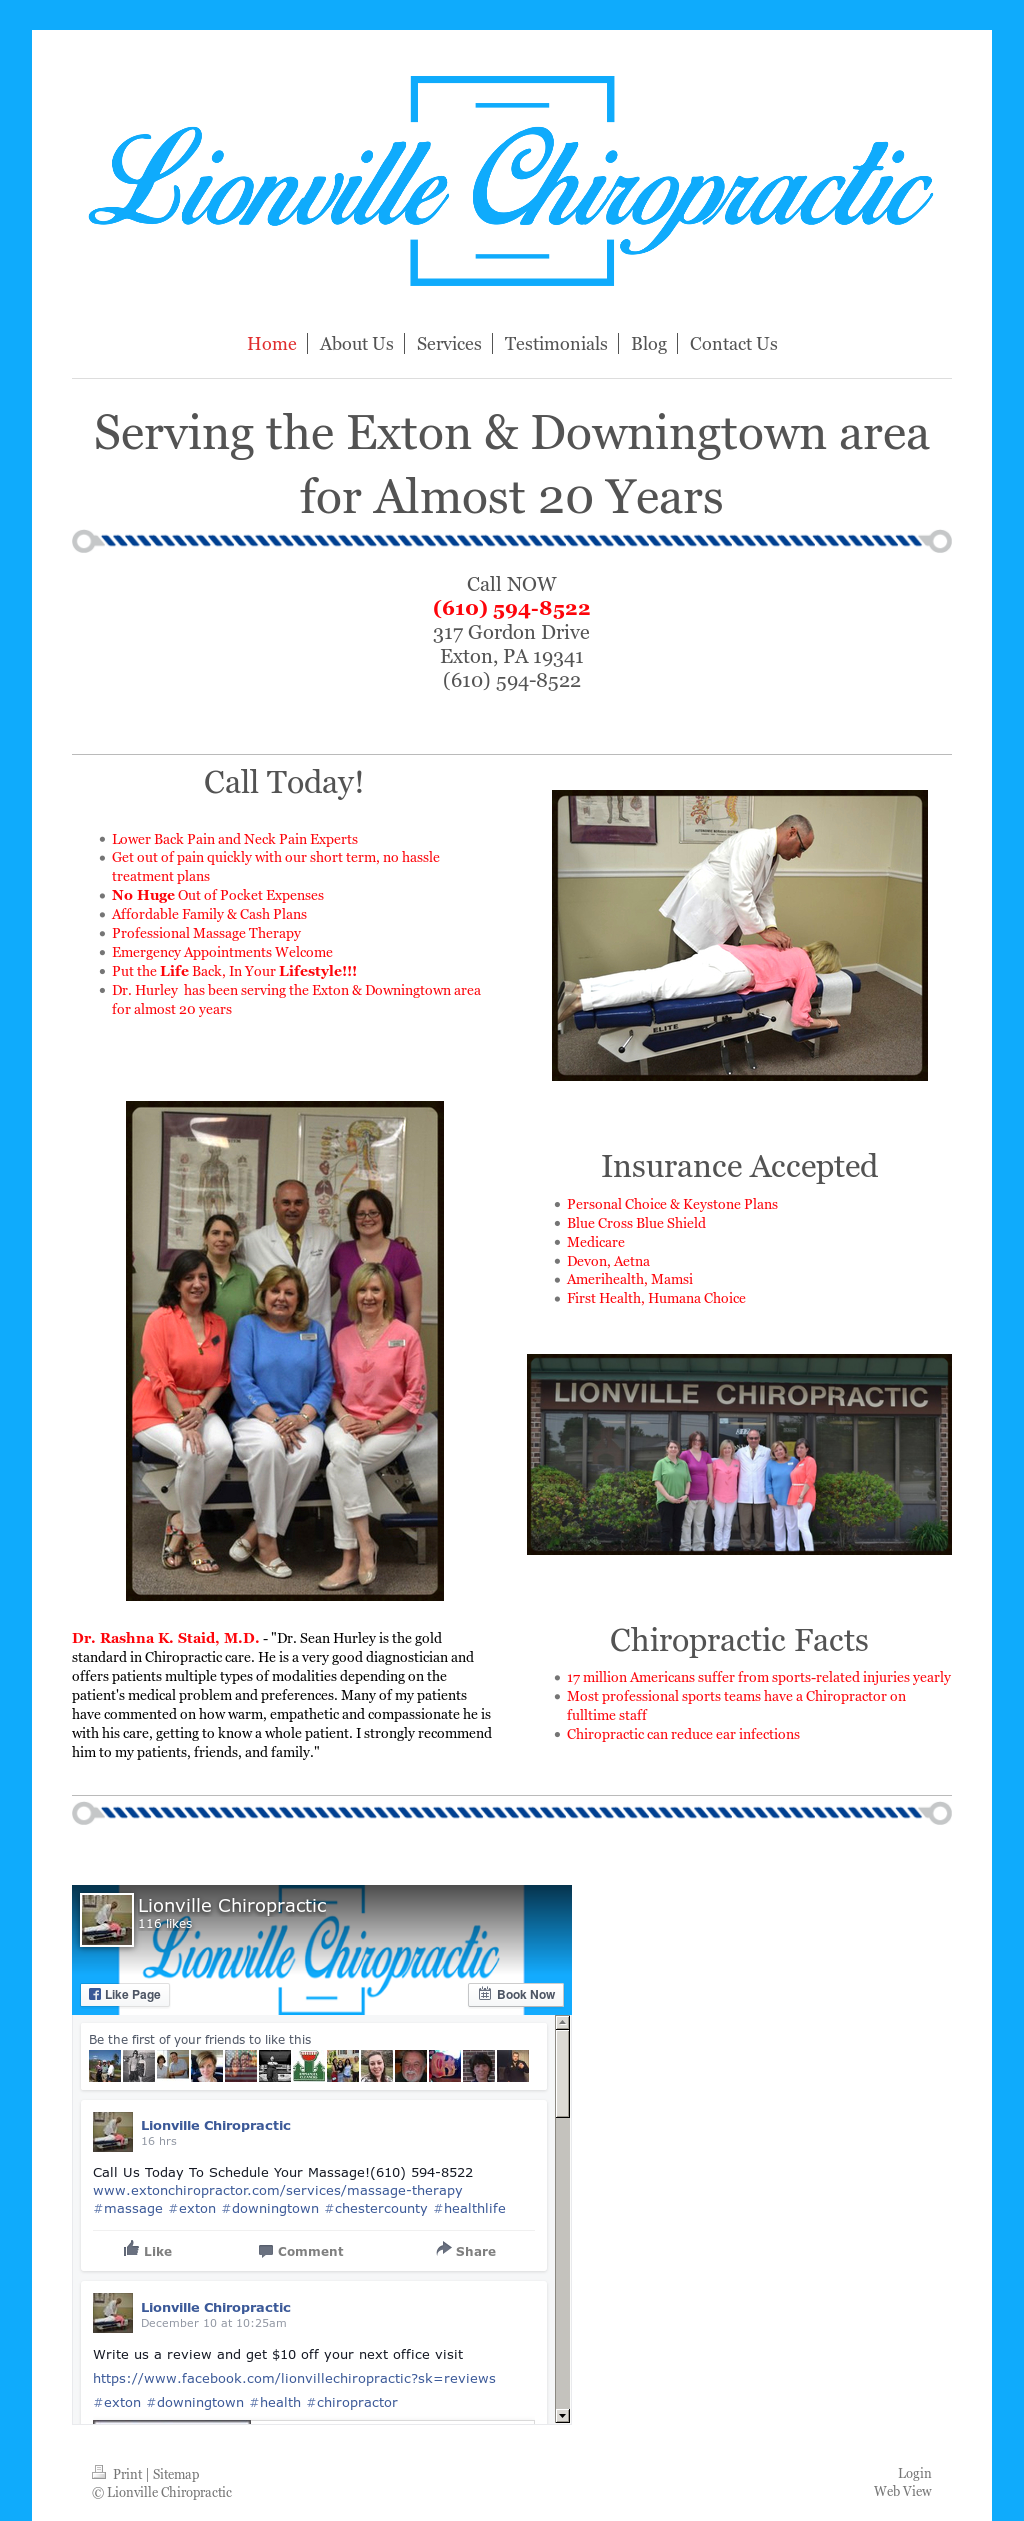 Lionville Chiropractic Competitors Revenue And Employees